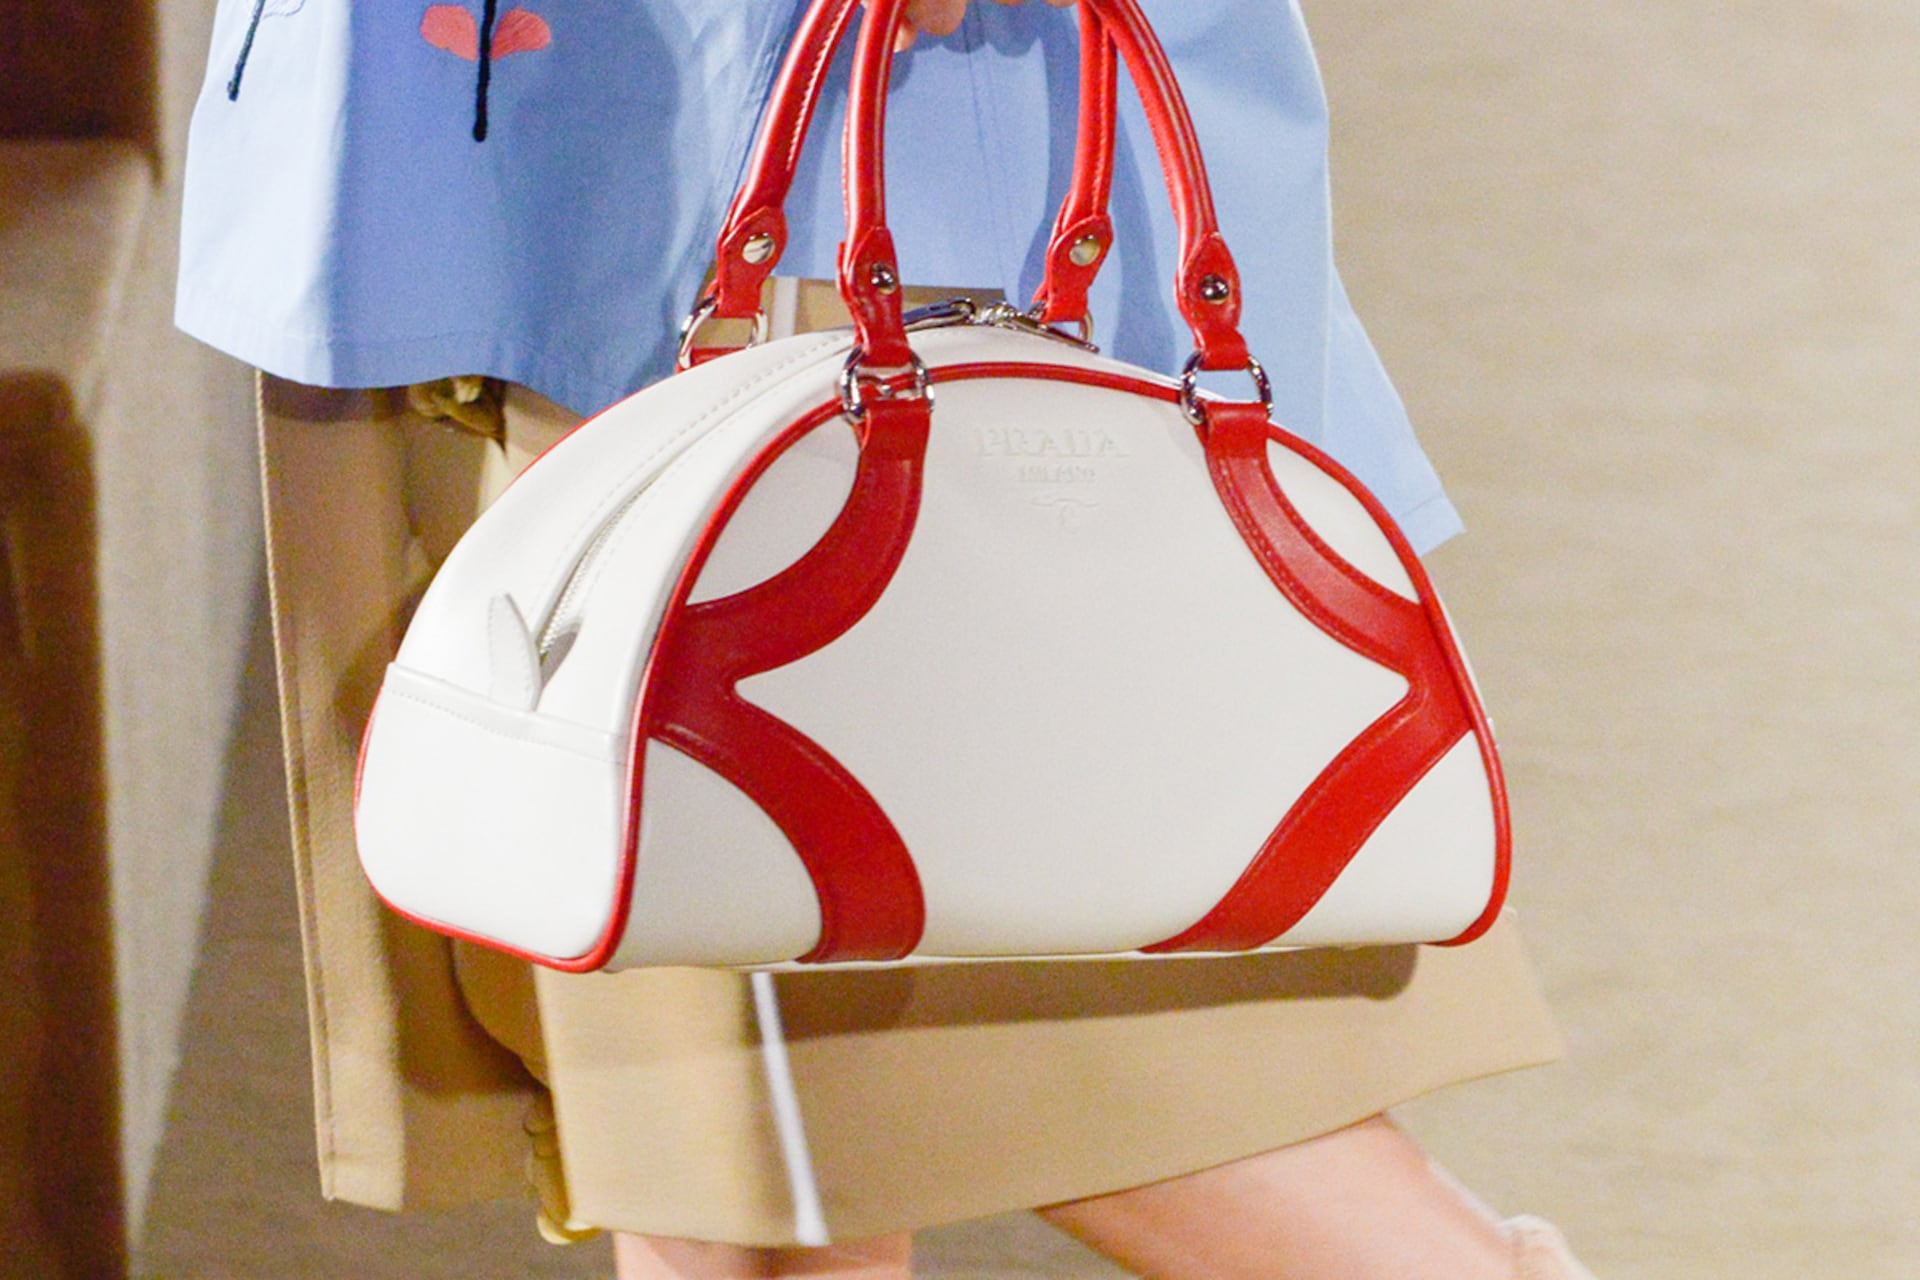 Prada Resort 2020 fashion show detail 1 with bowling bag and shoes